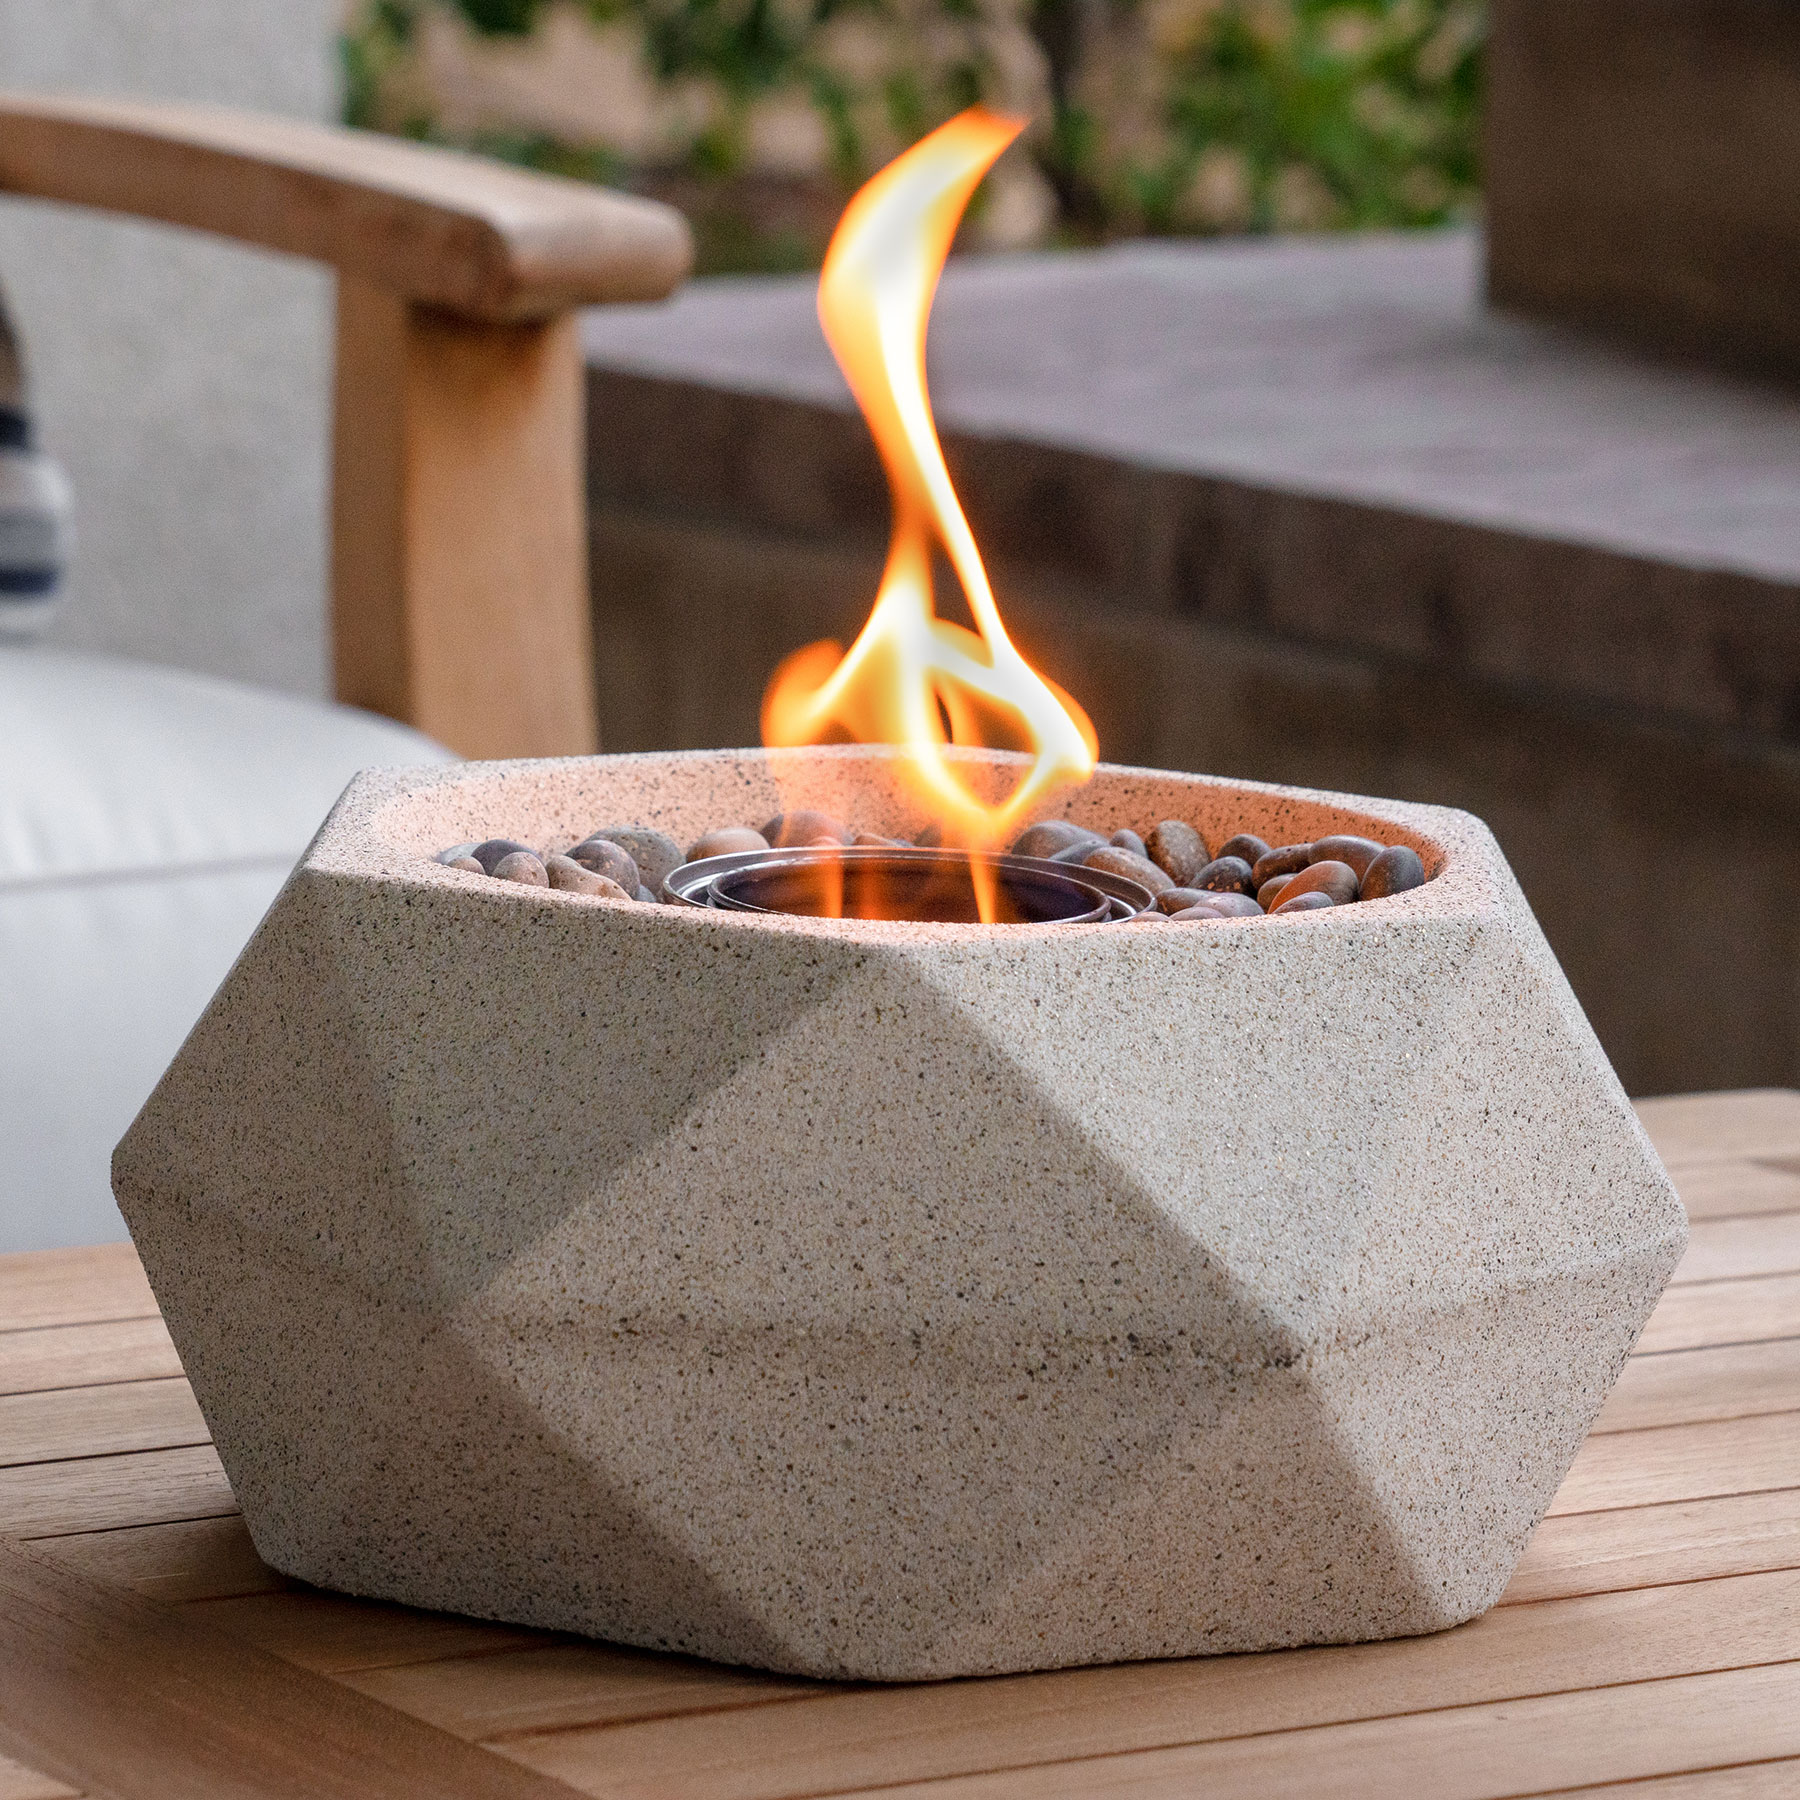 Best Fire Pits: Terra Flame Table Top Fire Bowl